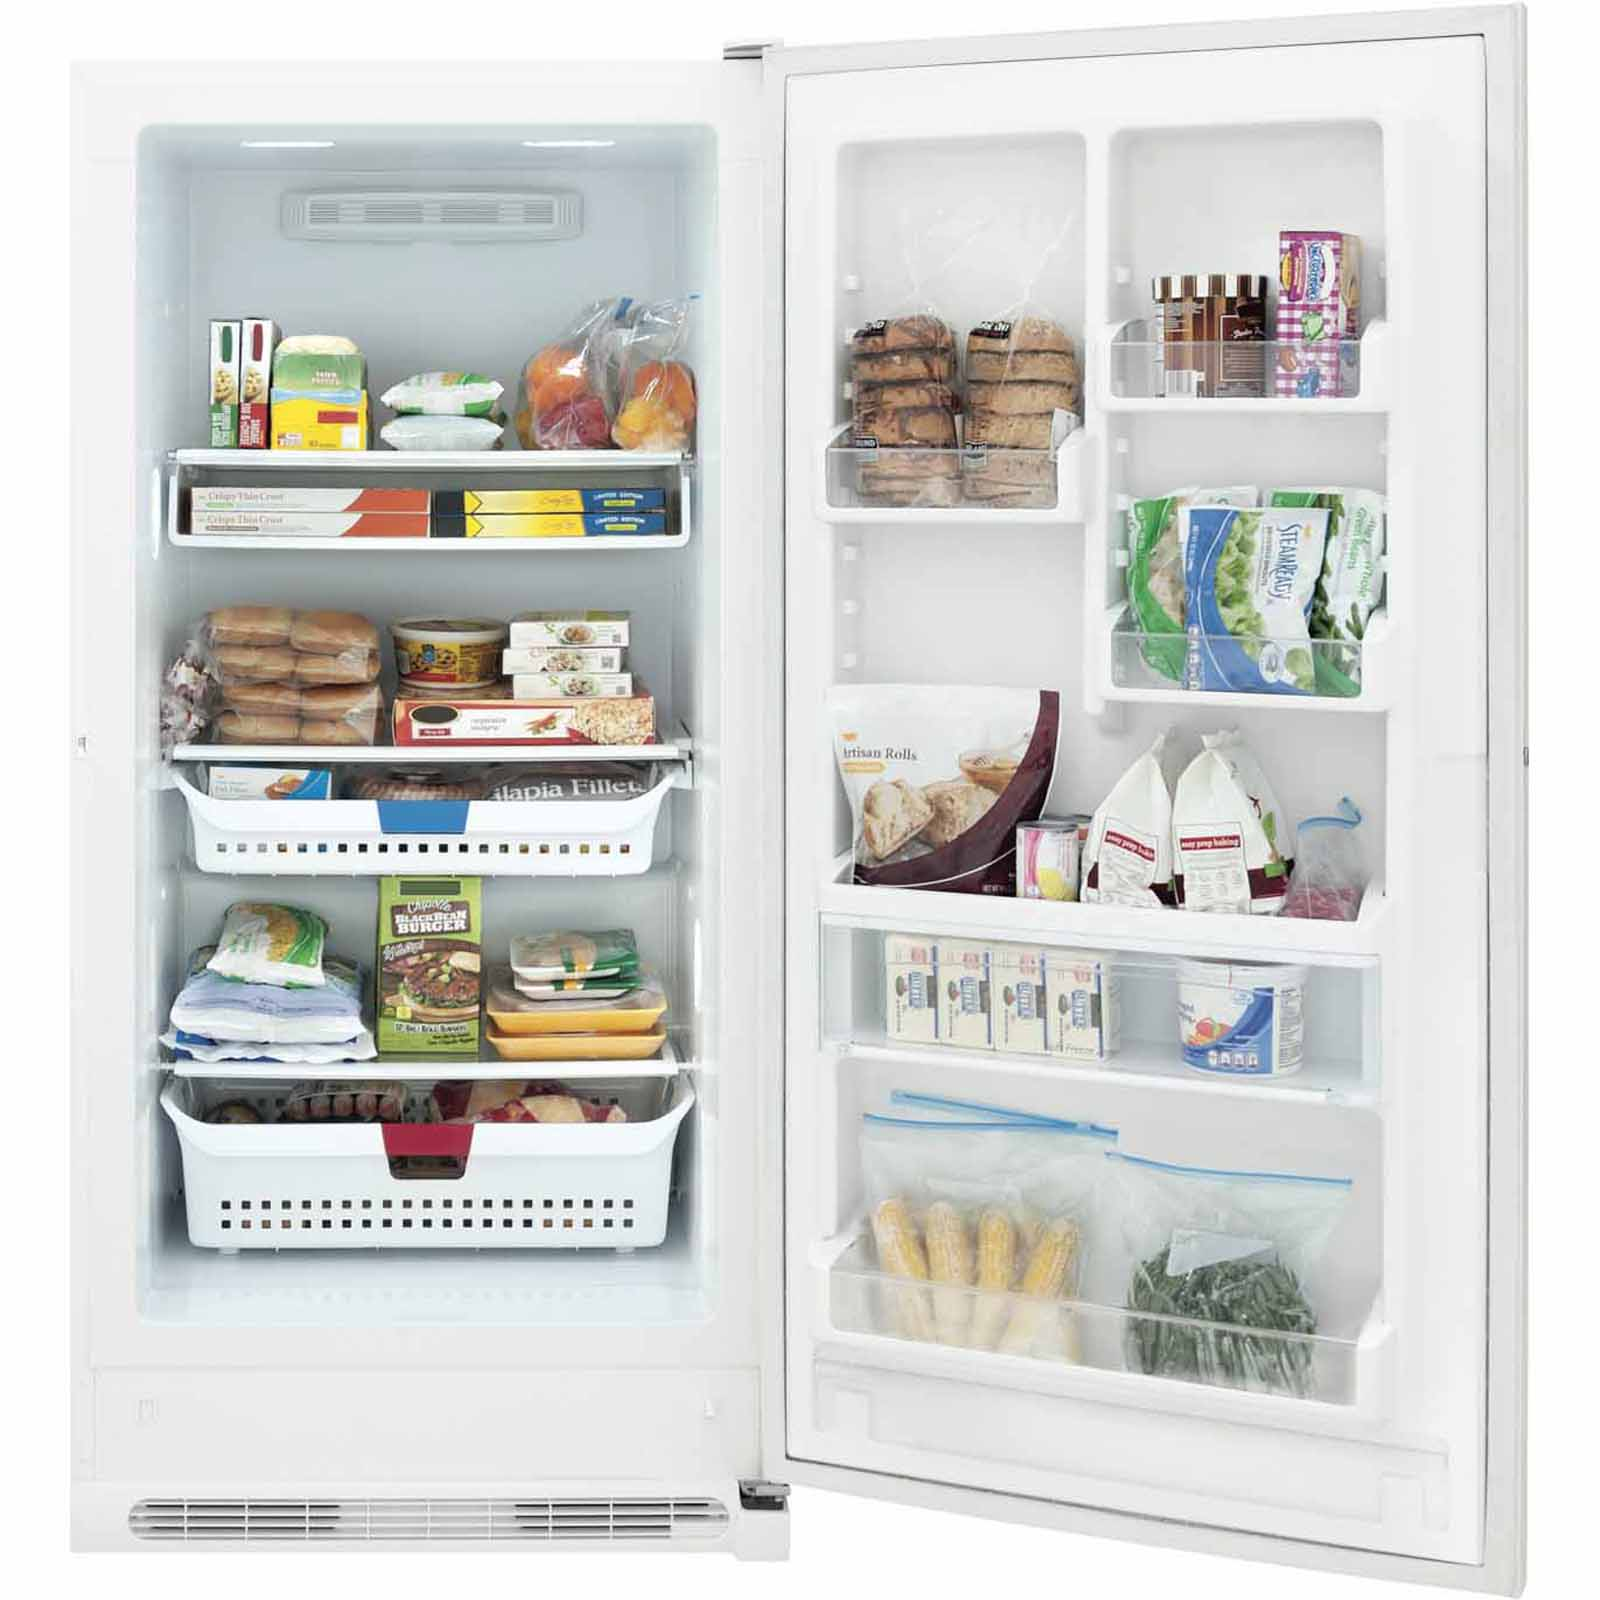 Frigidaire FFFH17F6QW 16.9 cu. ft. Upright Freezer - White